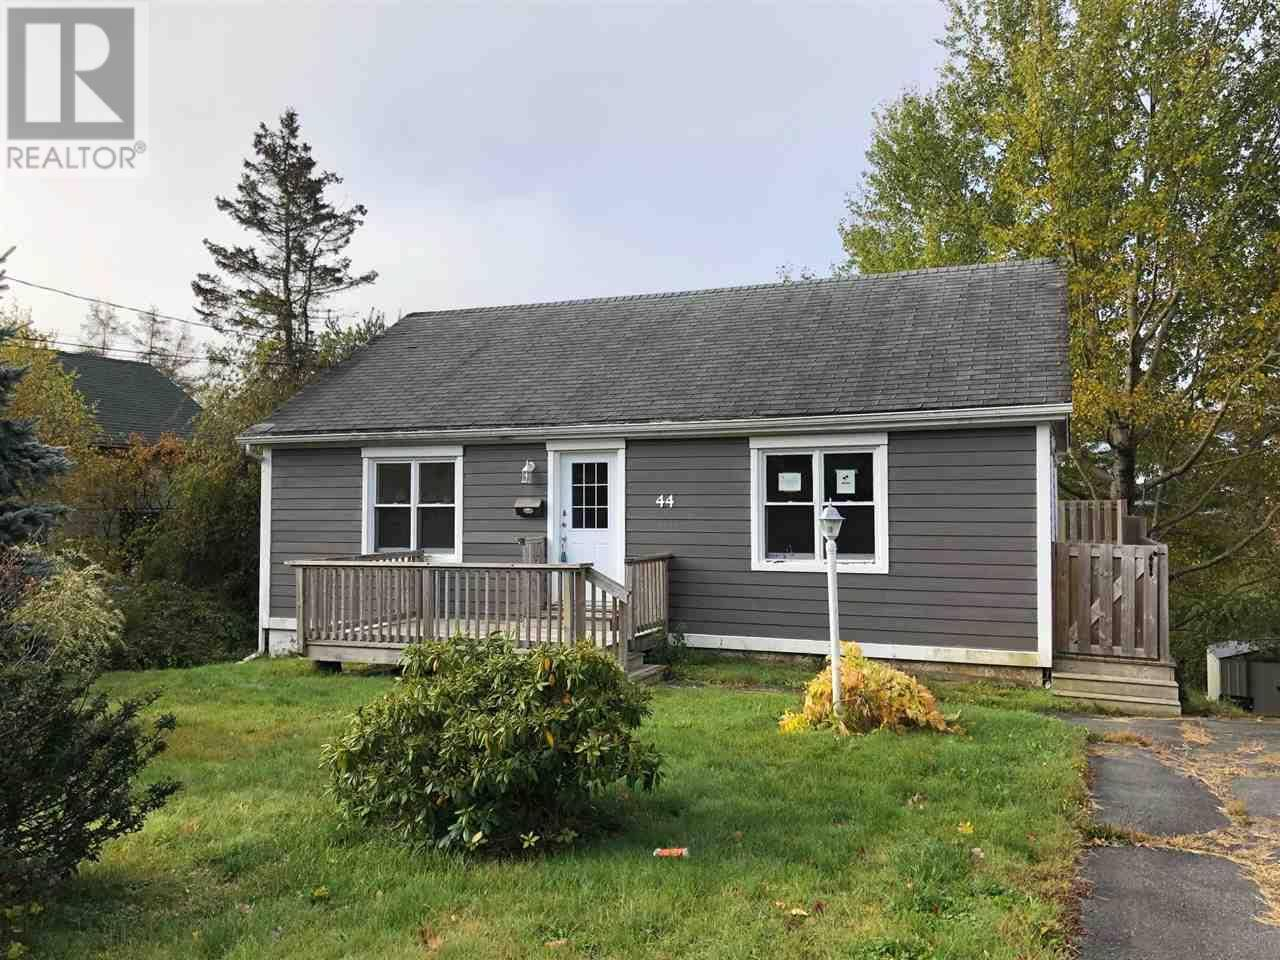 House for sale at 44 Hillside Ave Lower Sackville Nova Scotia - MLS: 201925145